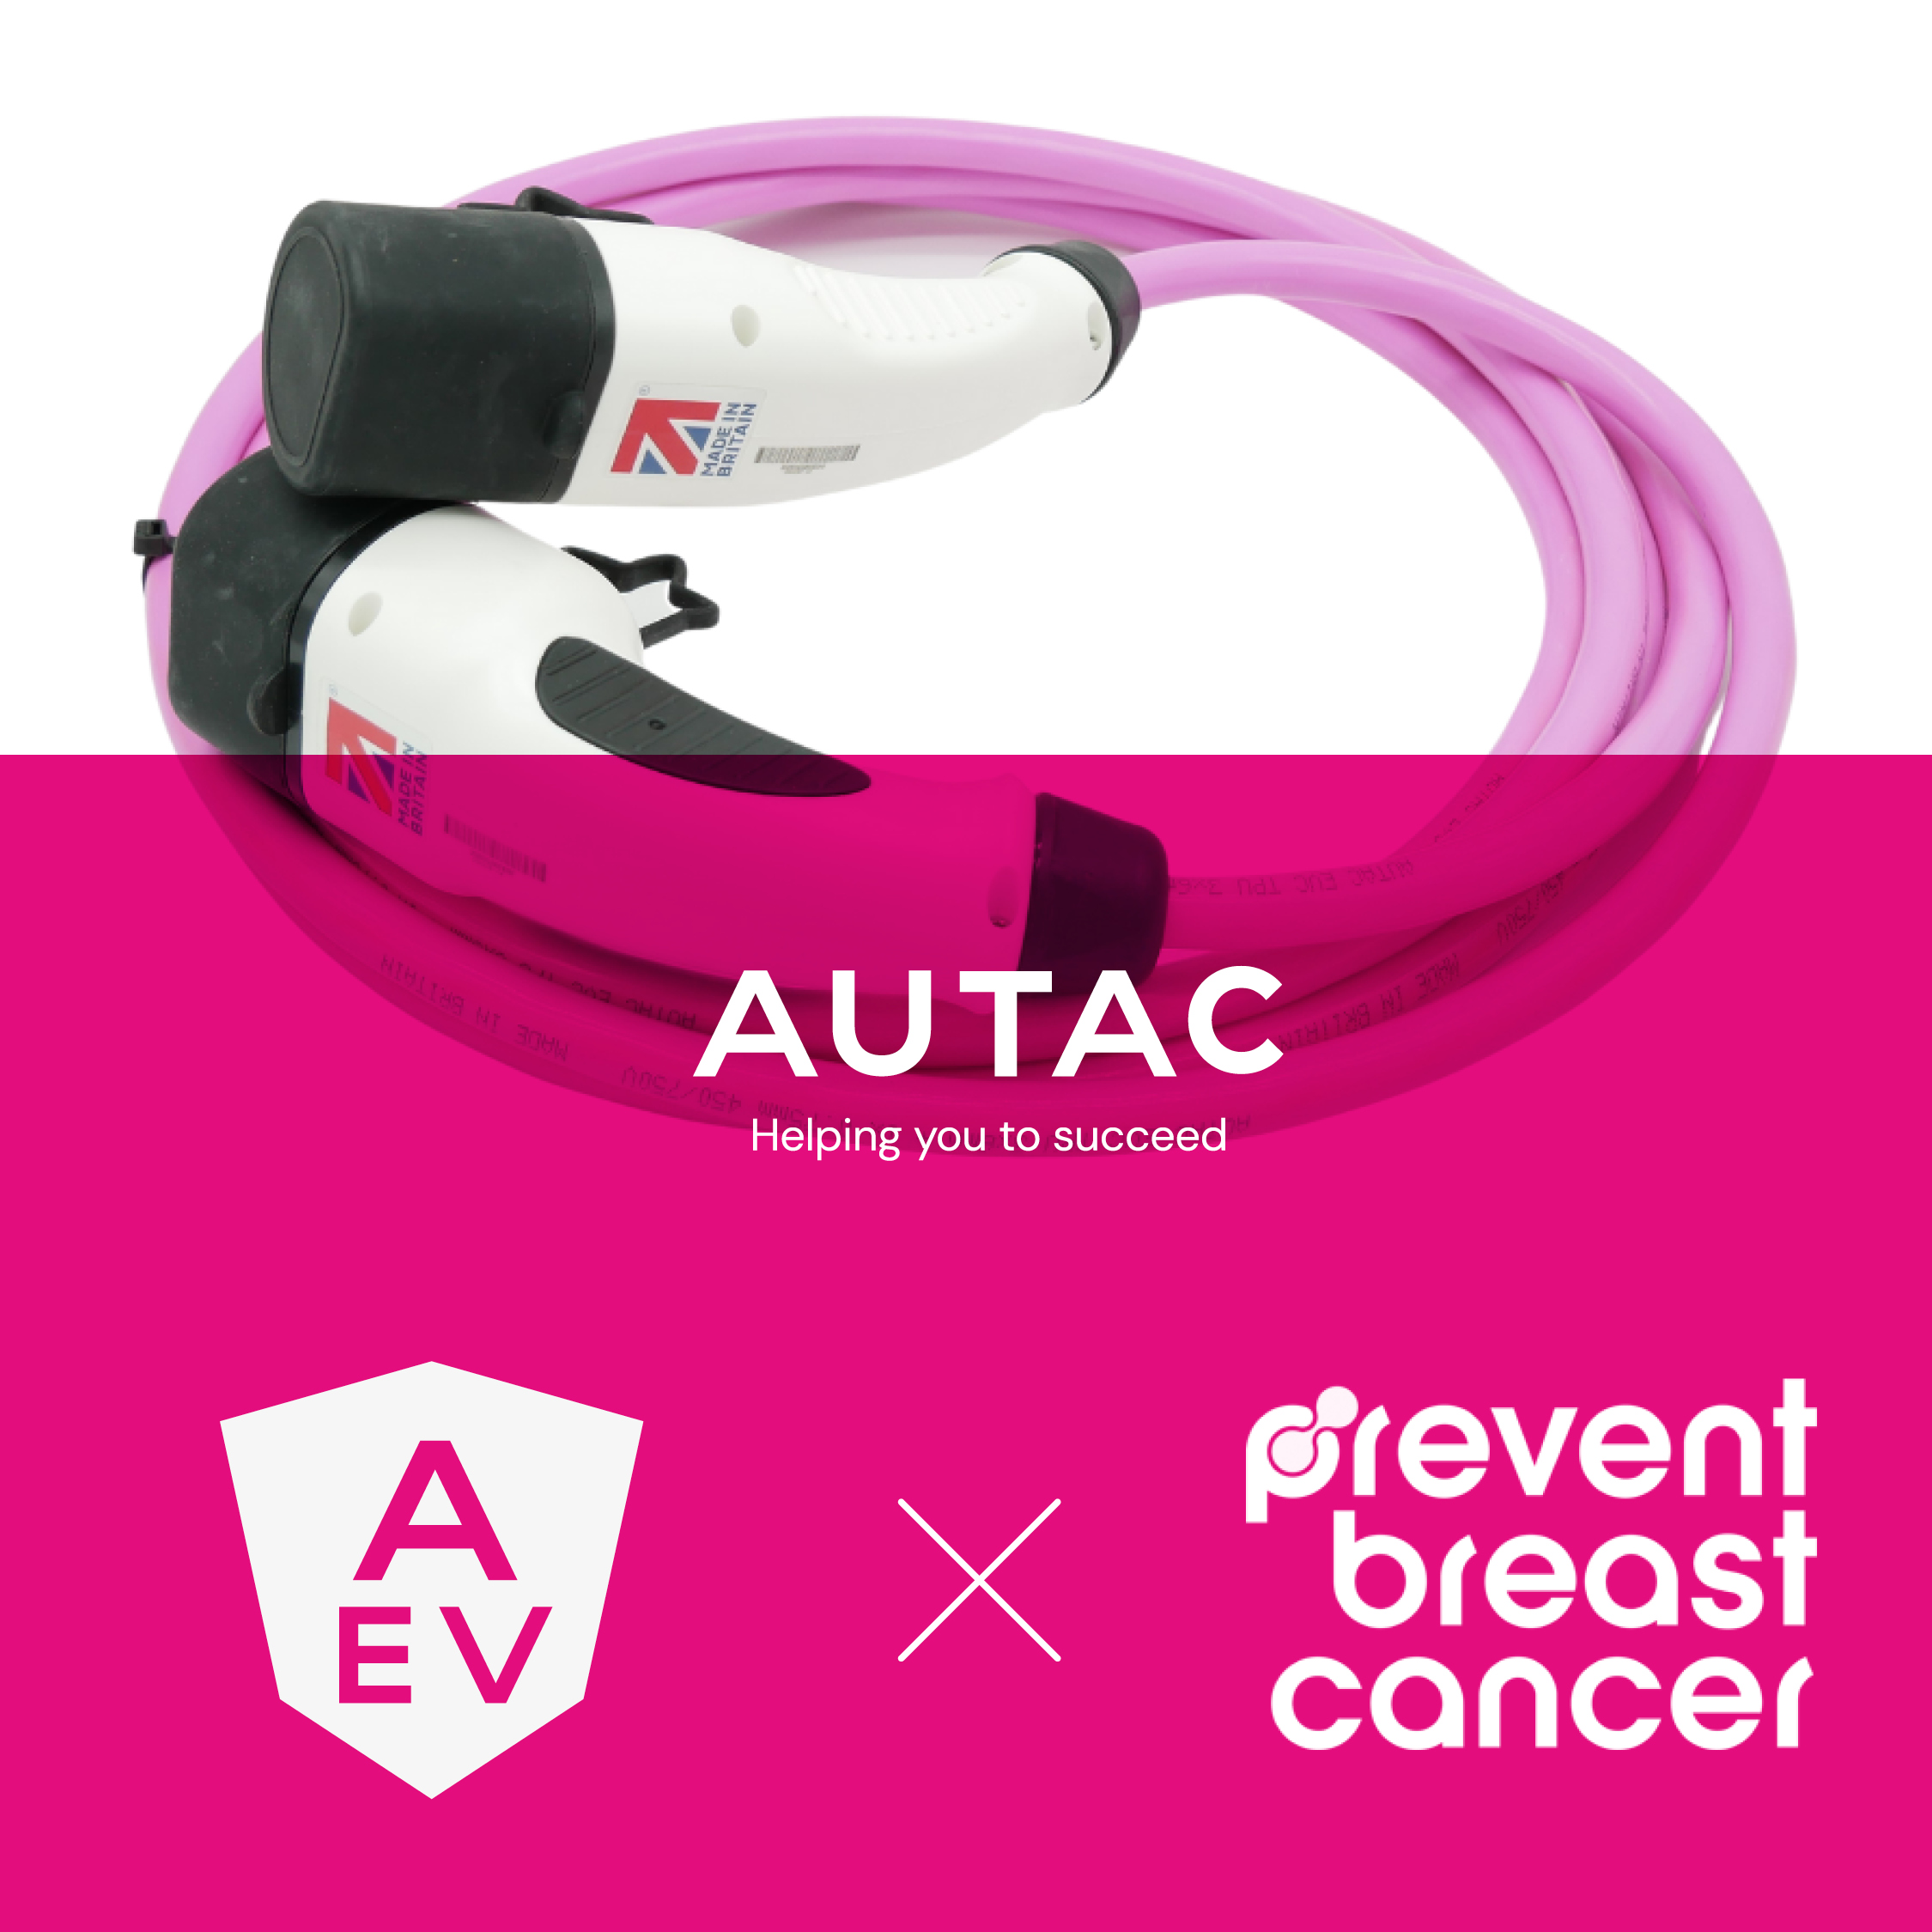 We're tickled pink that Autac's new EV cable is supporting breast cancer prevention.